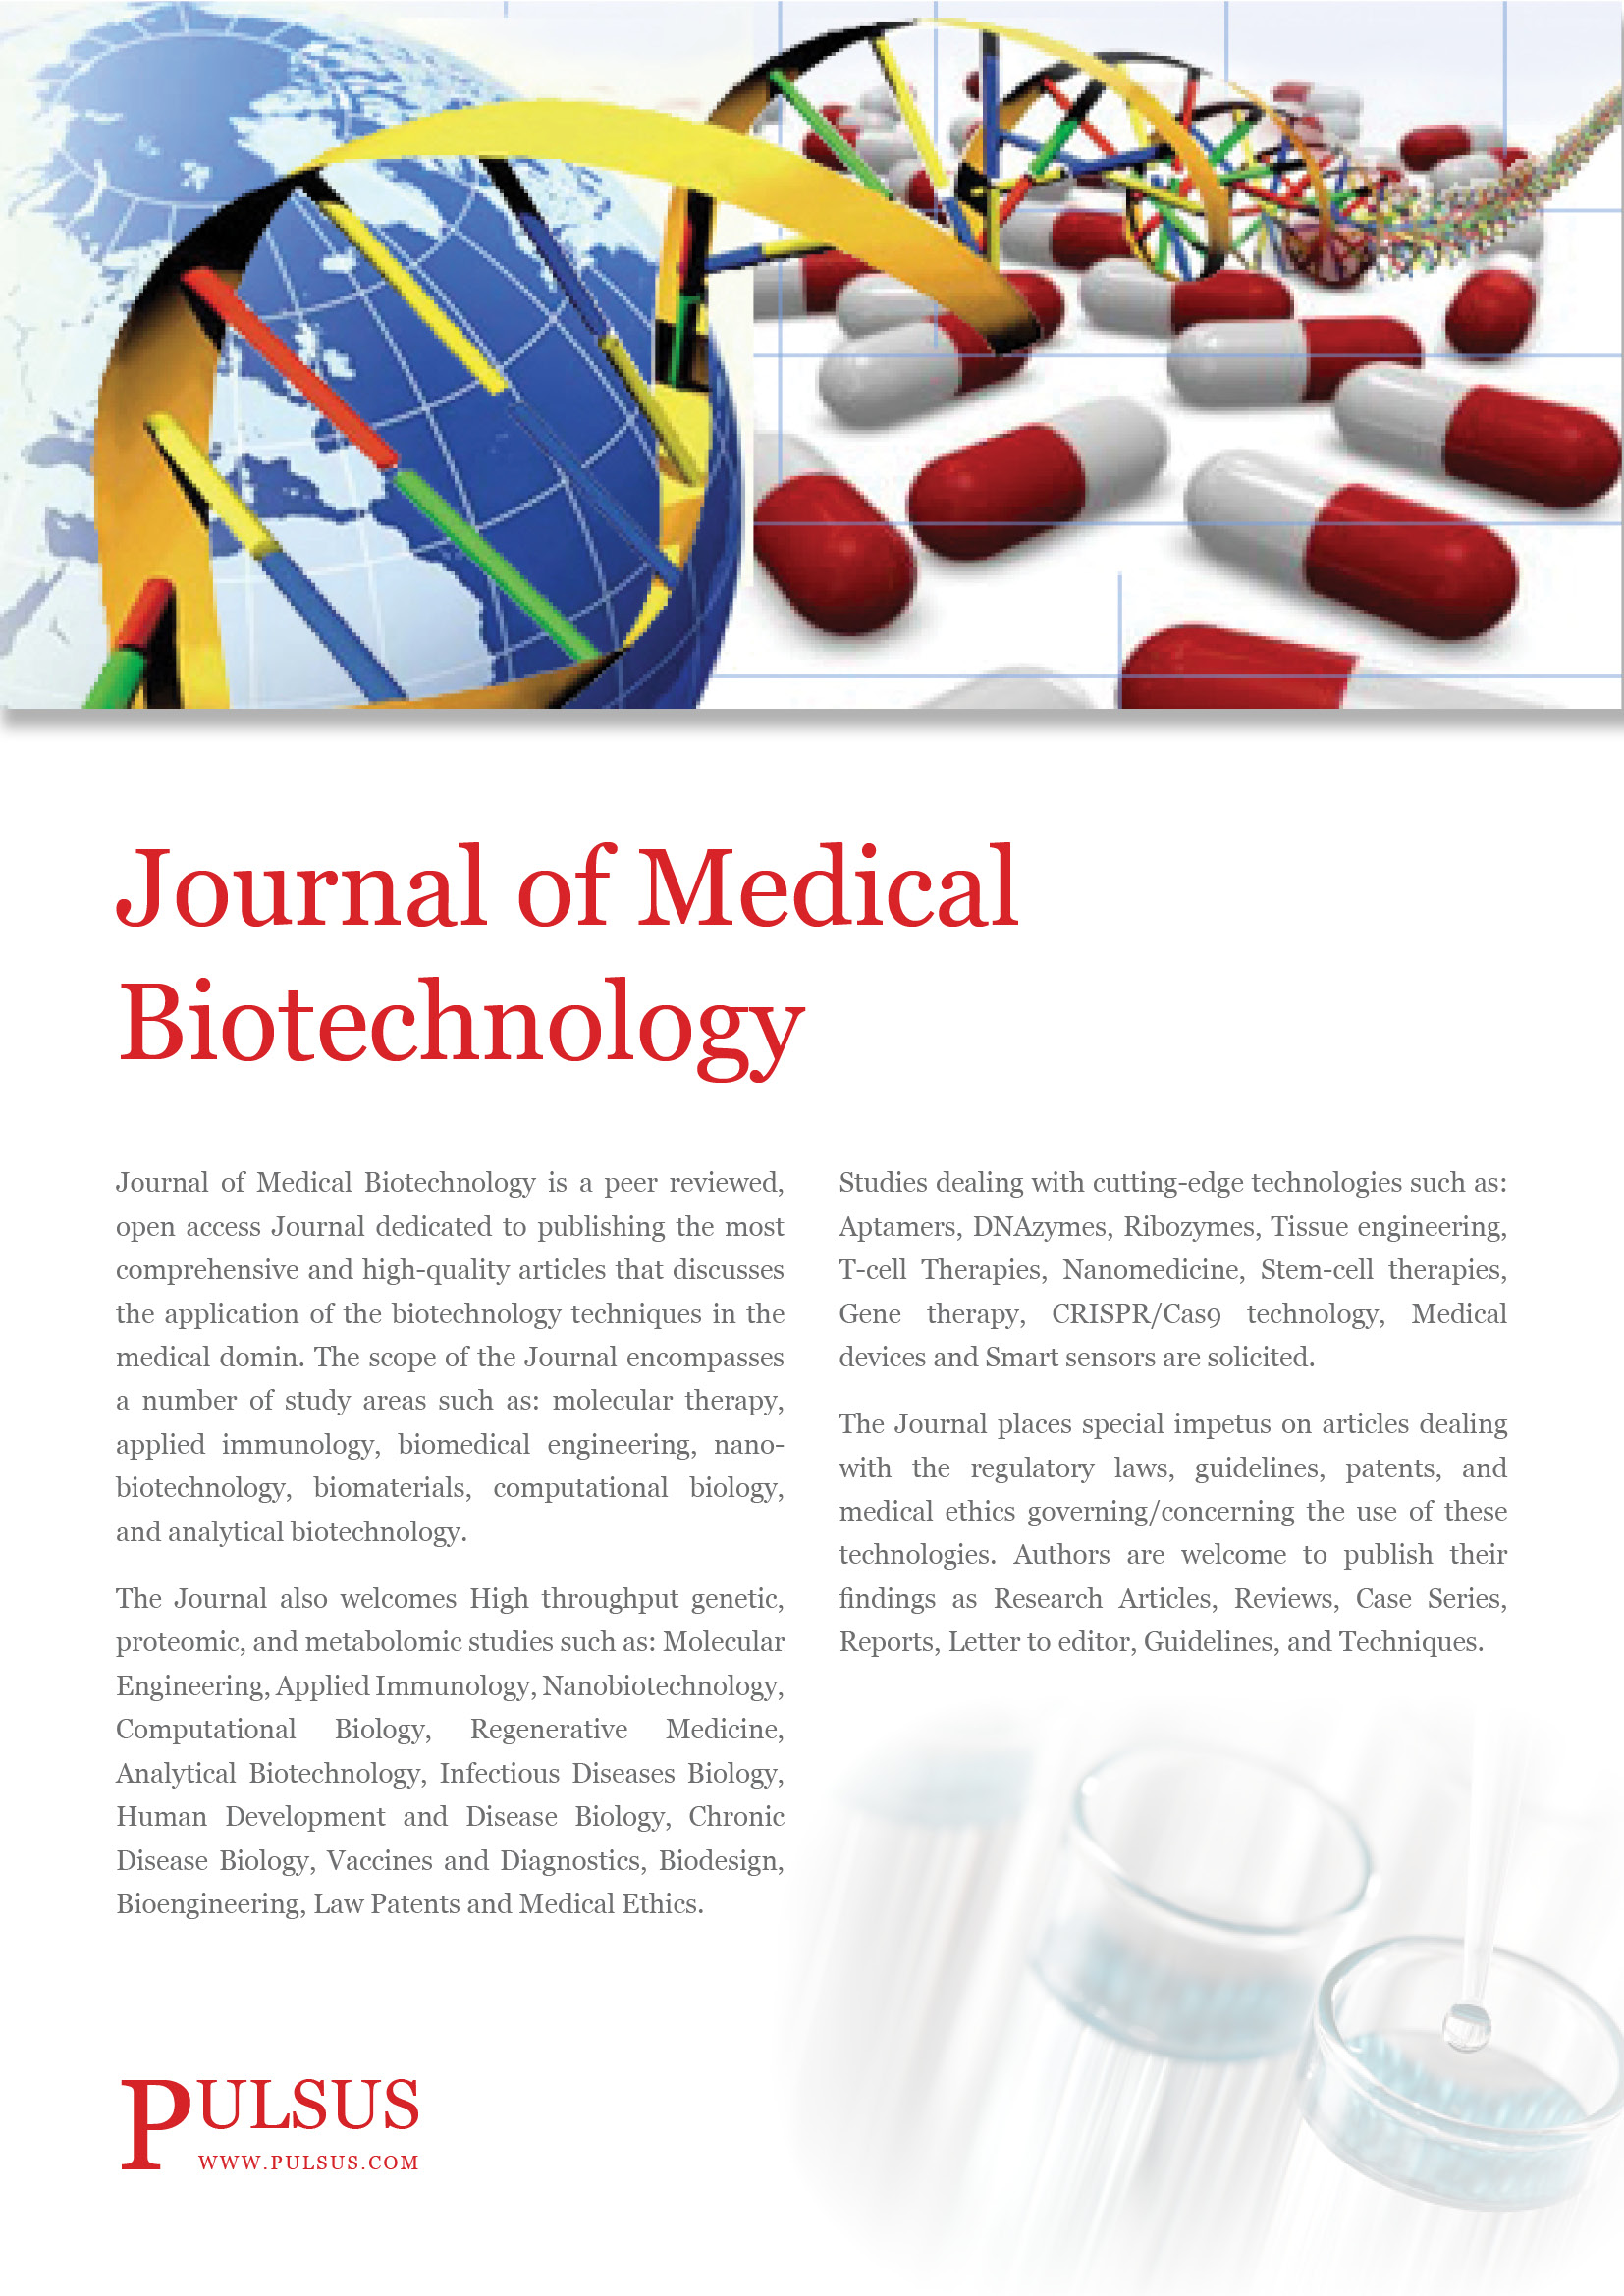 Journal of Medical Biotechnology